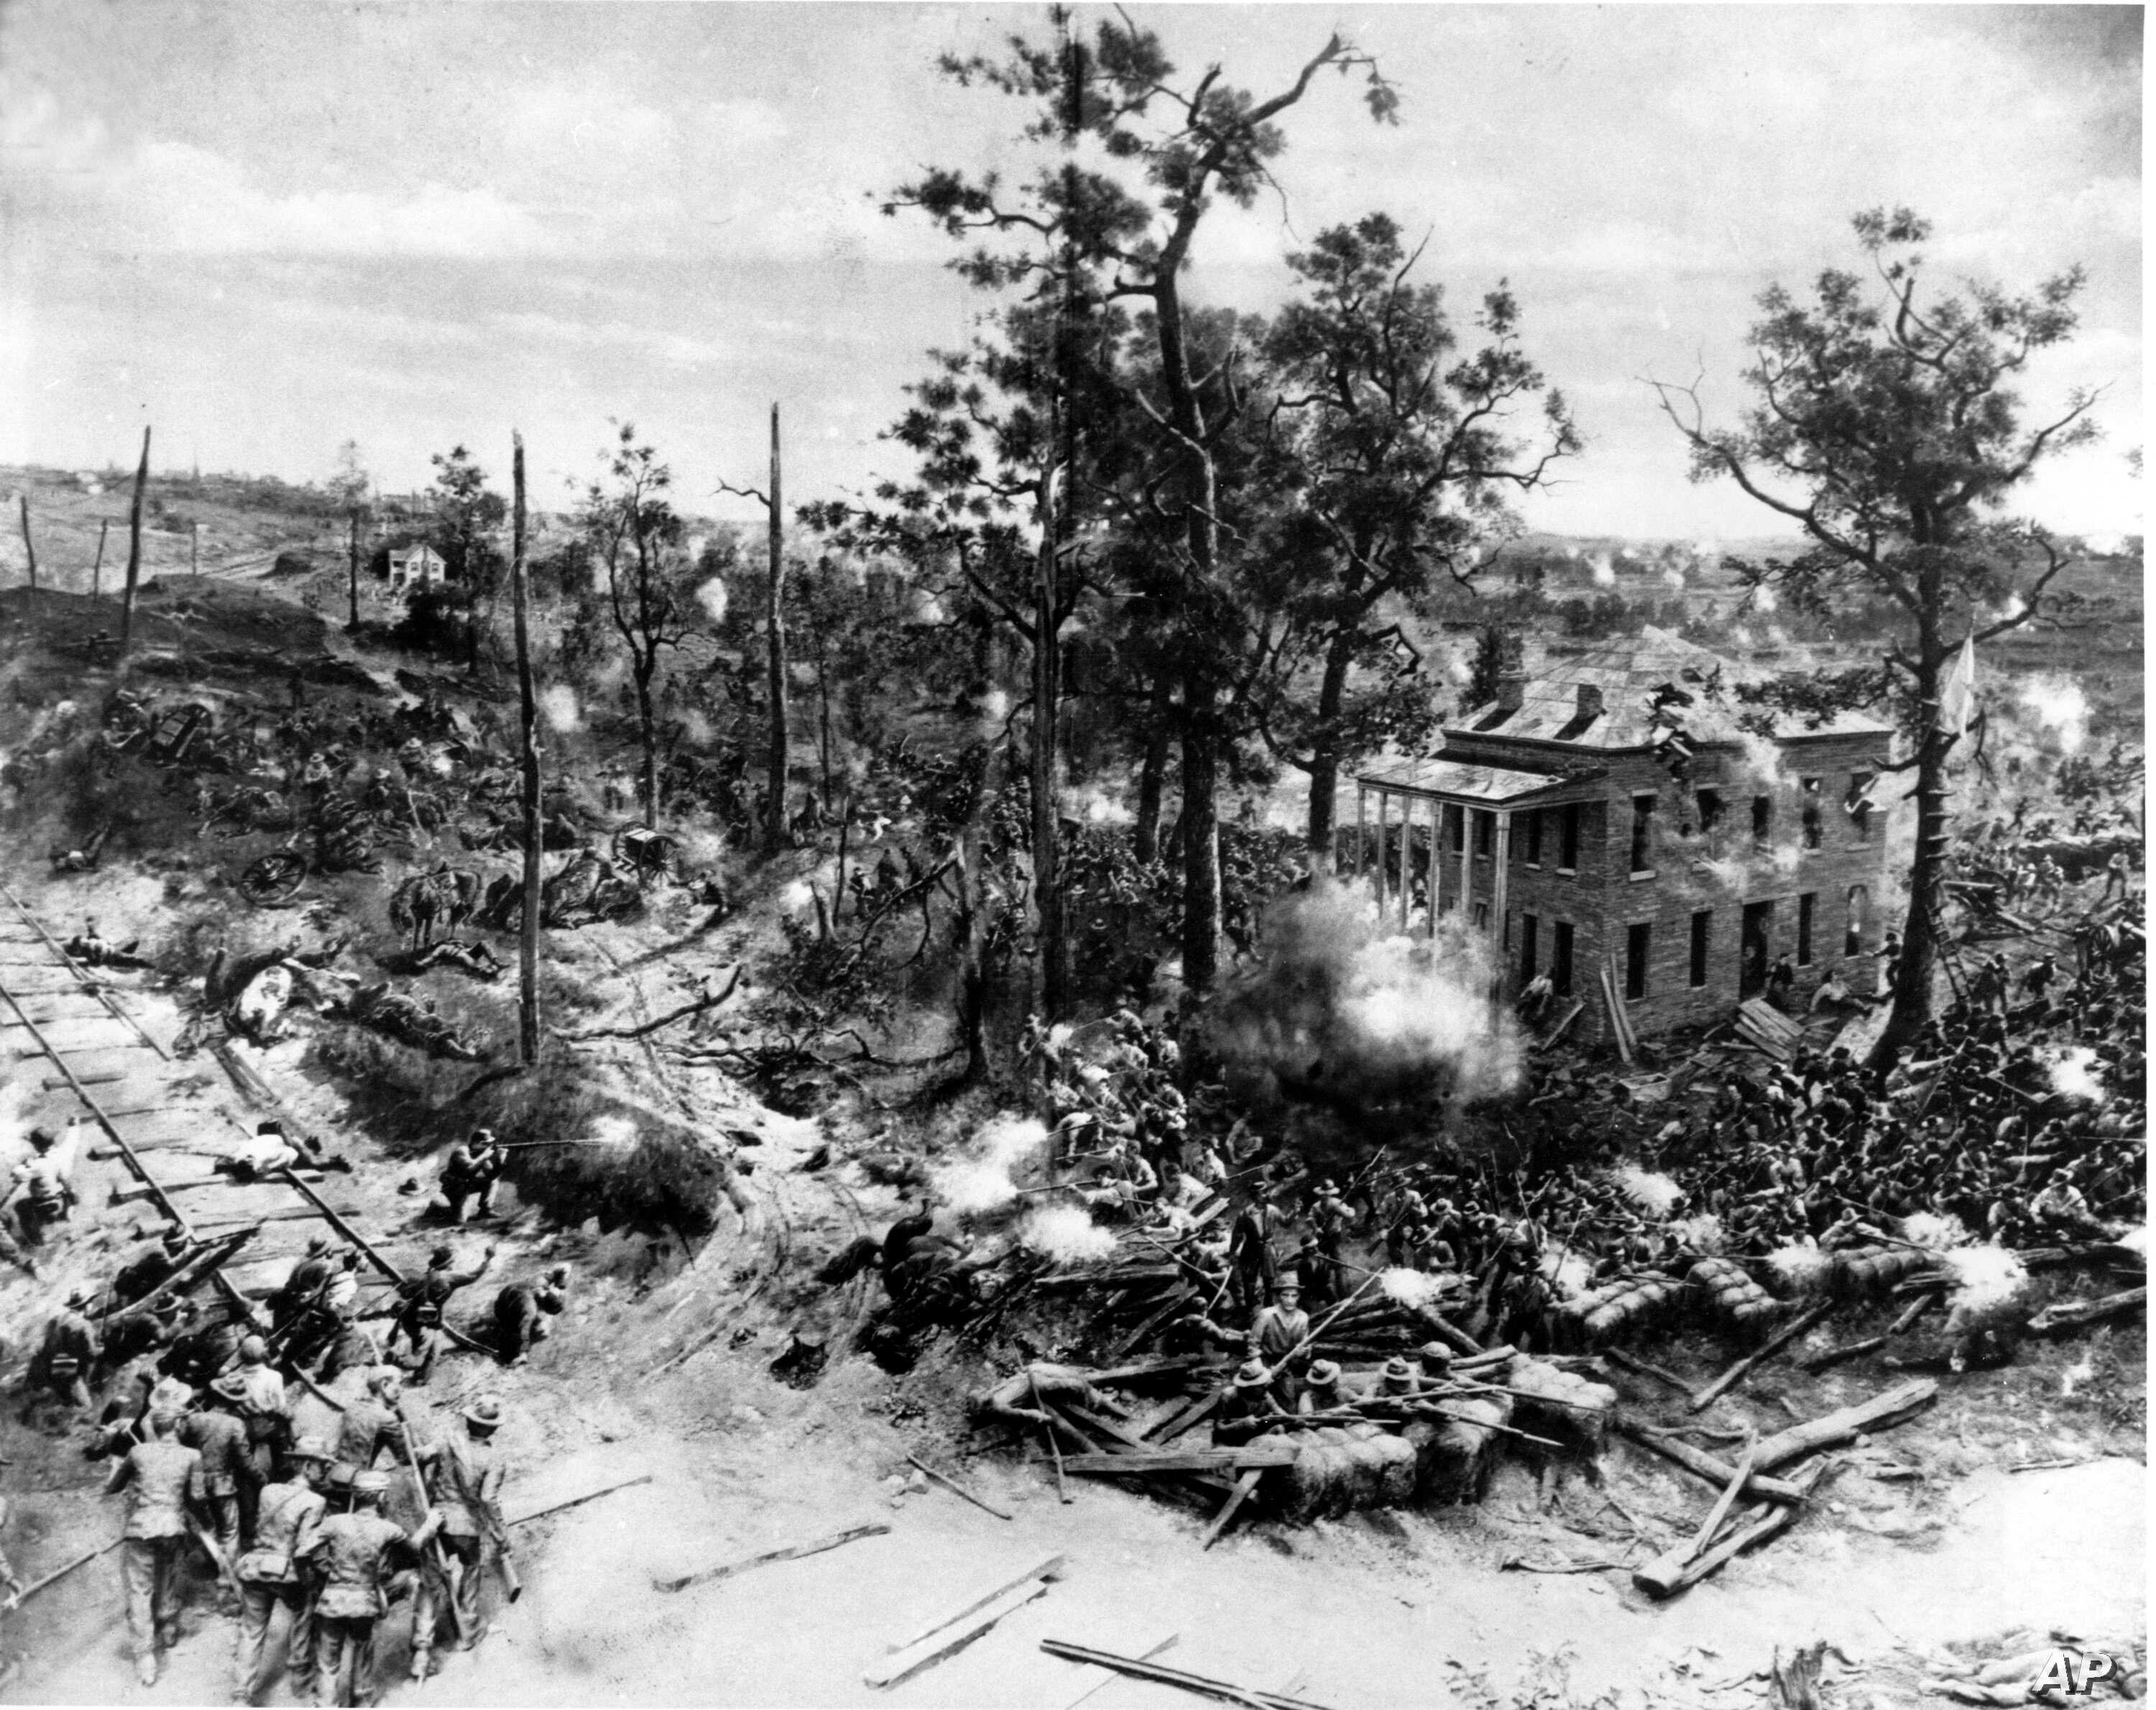 A close-up of a section of a cyclorama depicting the Battle of Atlanta from the American Civil War is seen in this undated photograph.